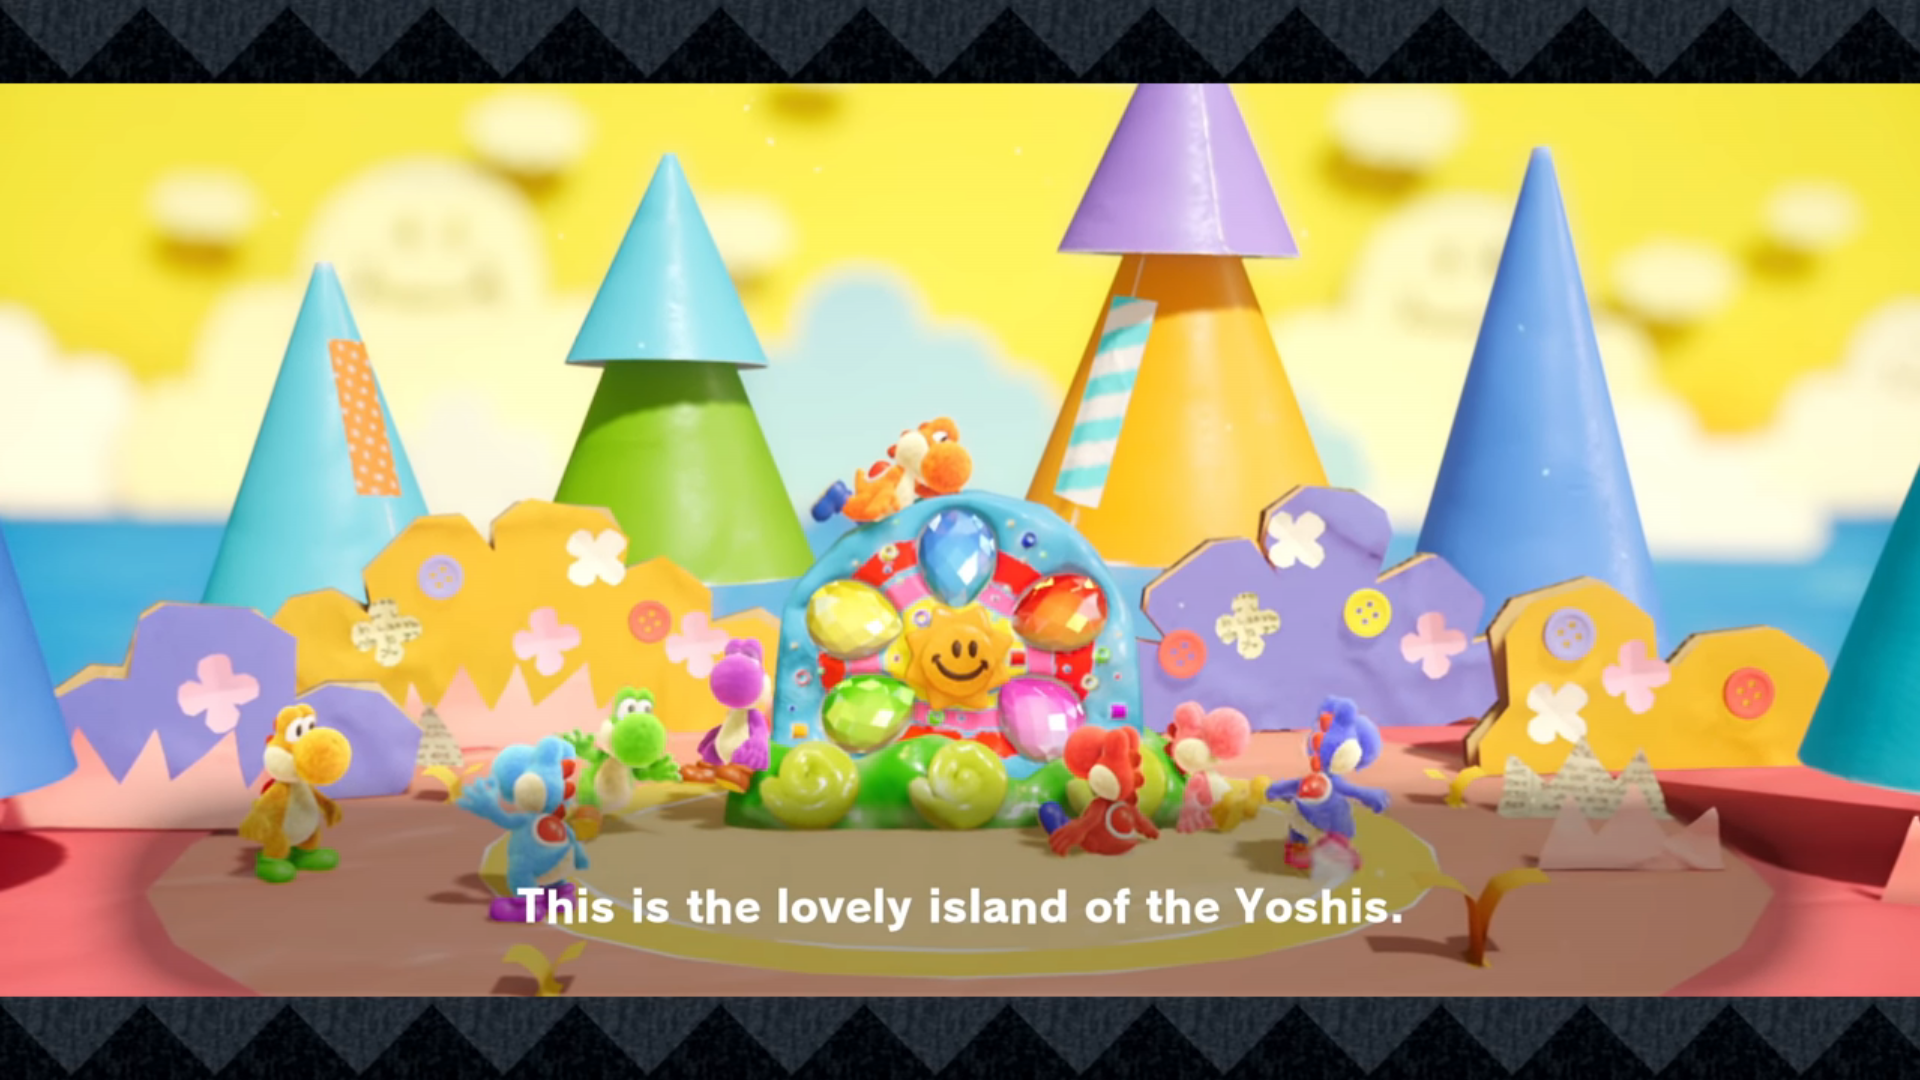 Yoshi's Crafted World and Kirby's Epic Yarn get dated for March